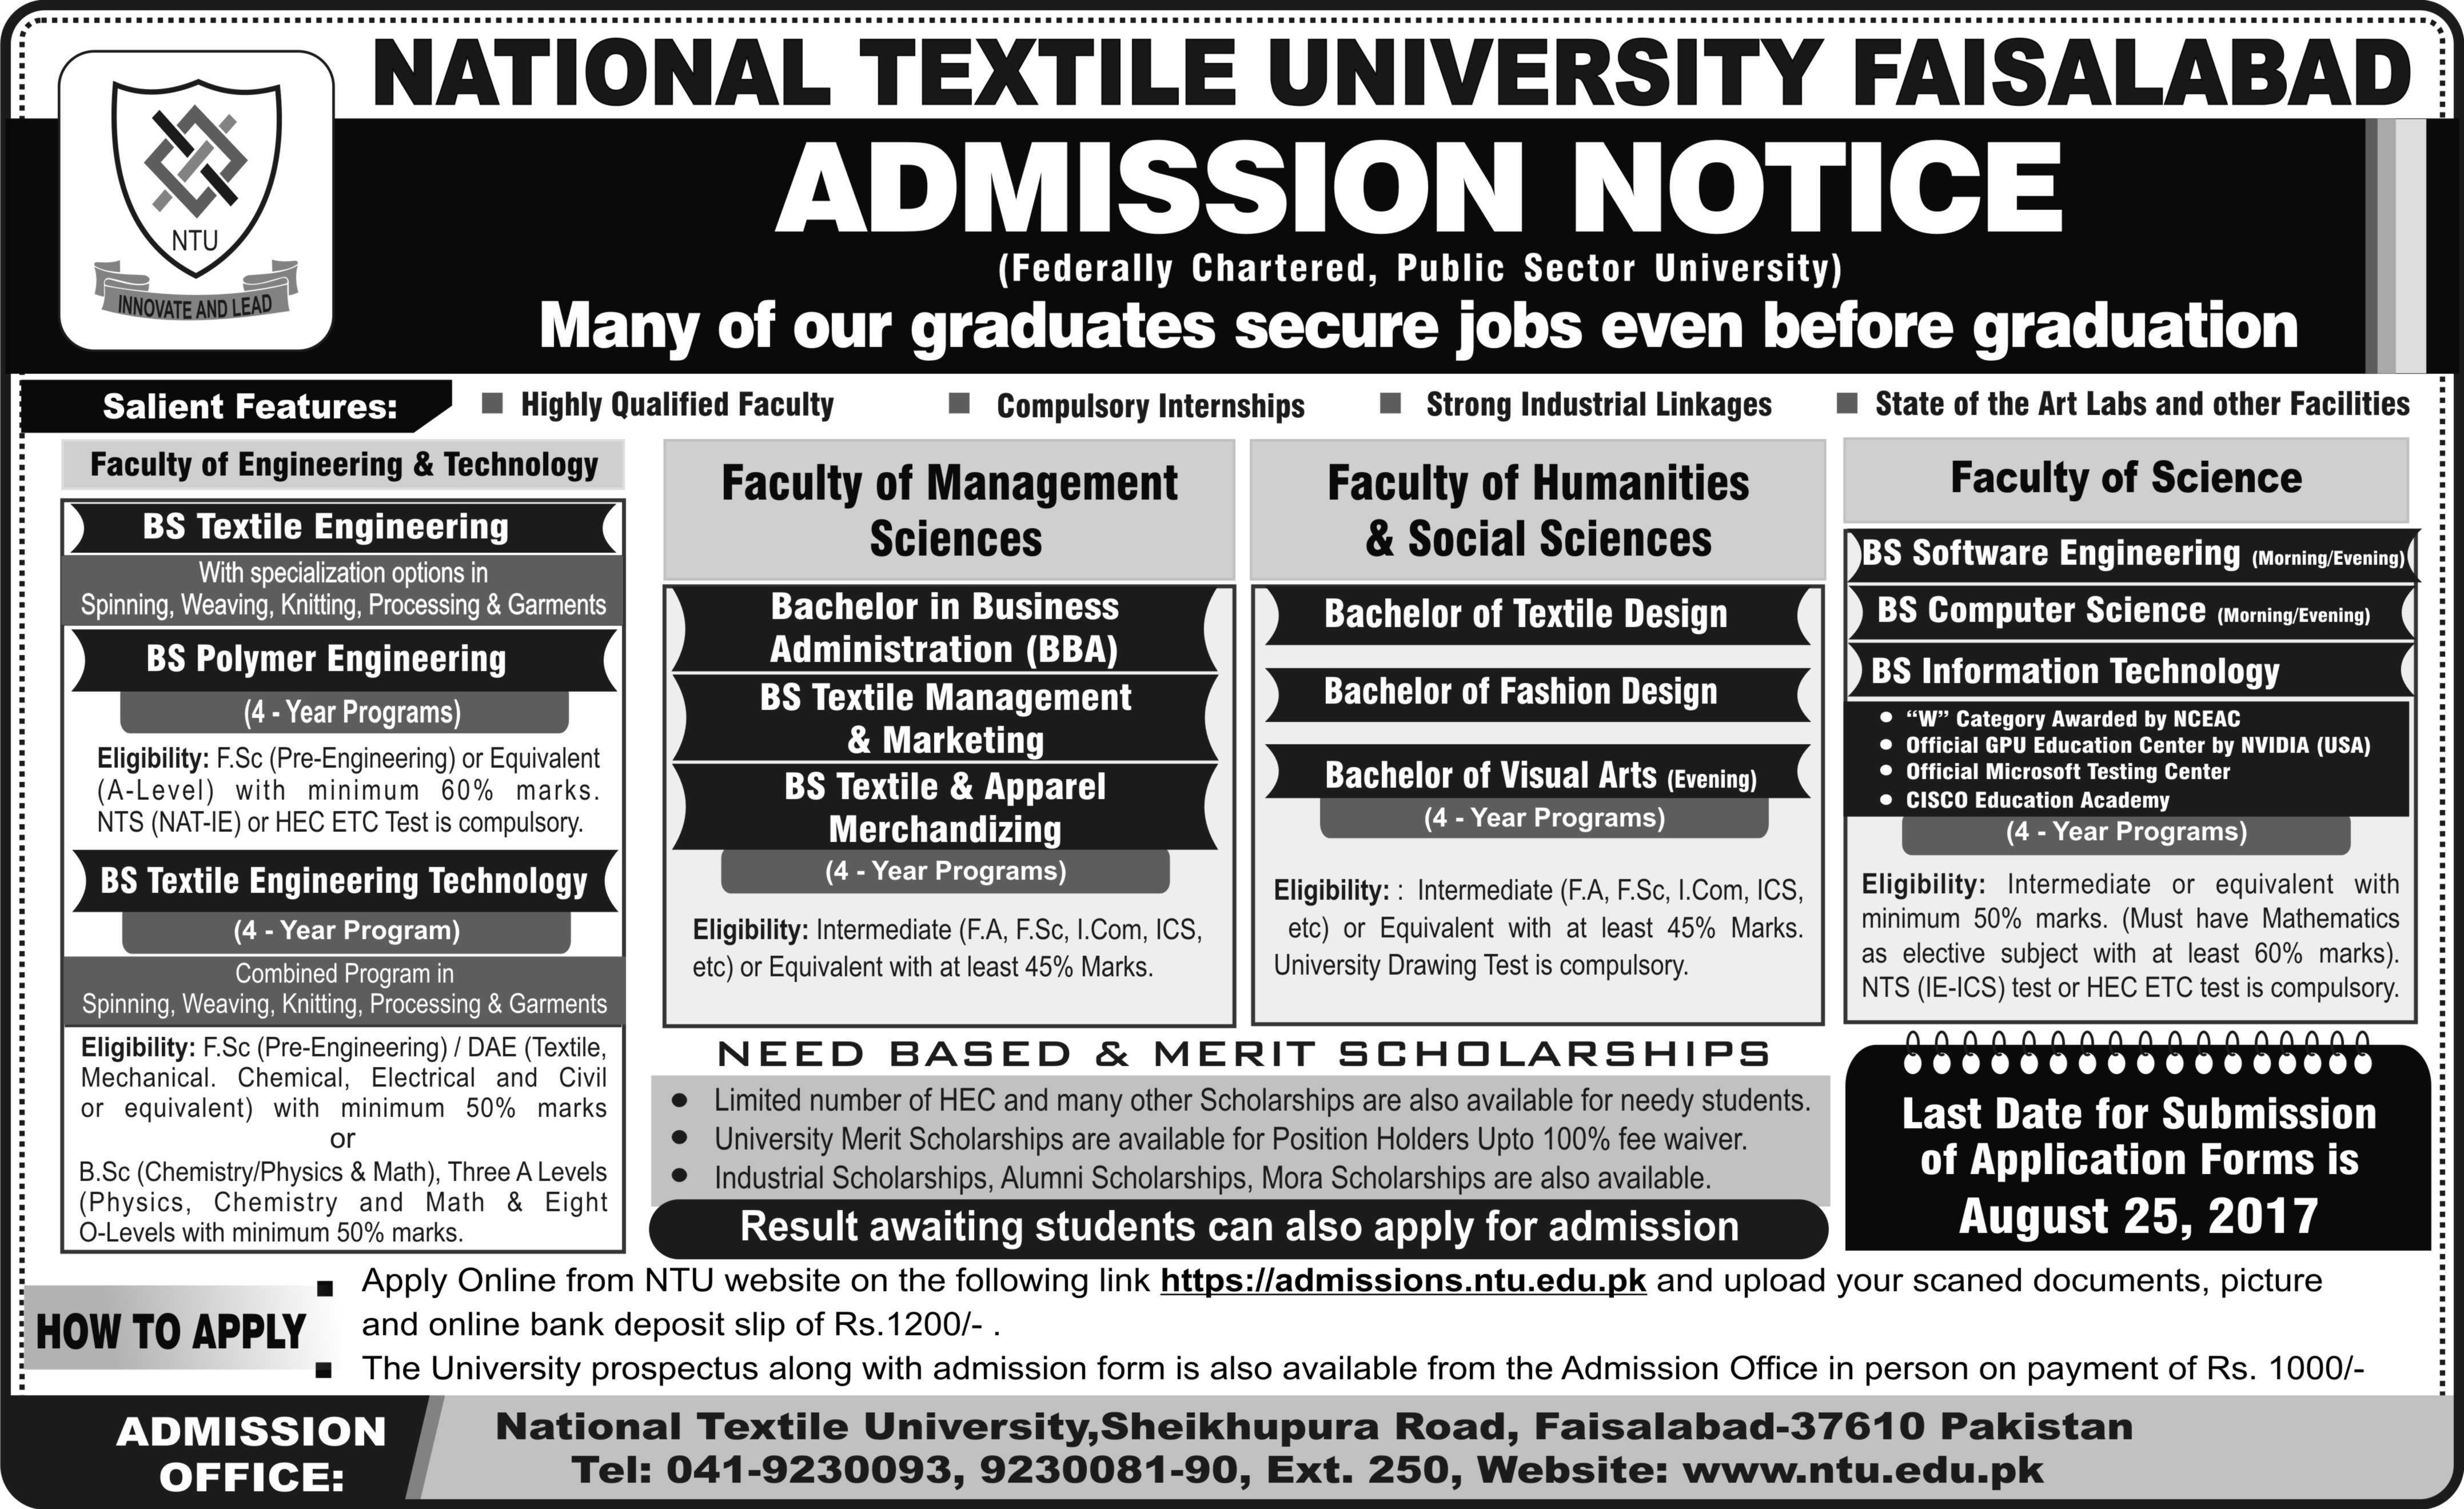 National Textile University Faisalabad Admissions 2017